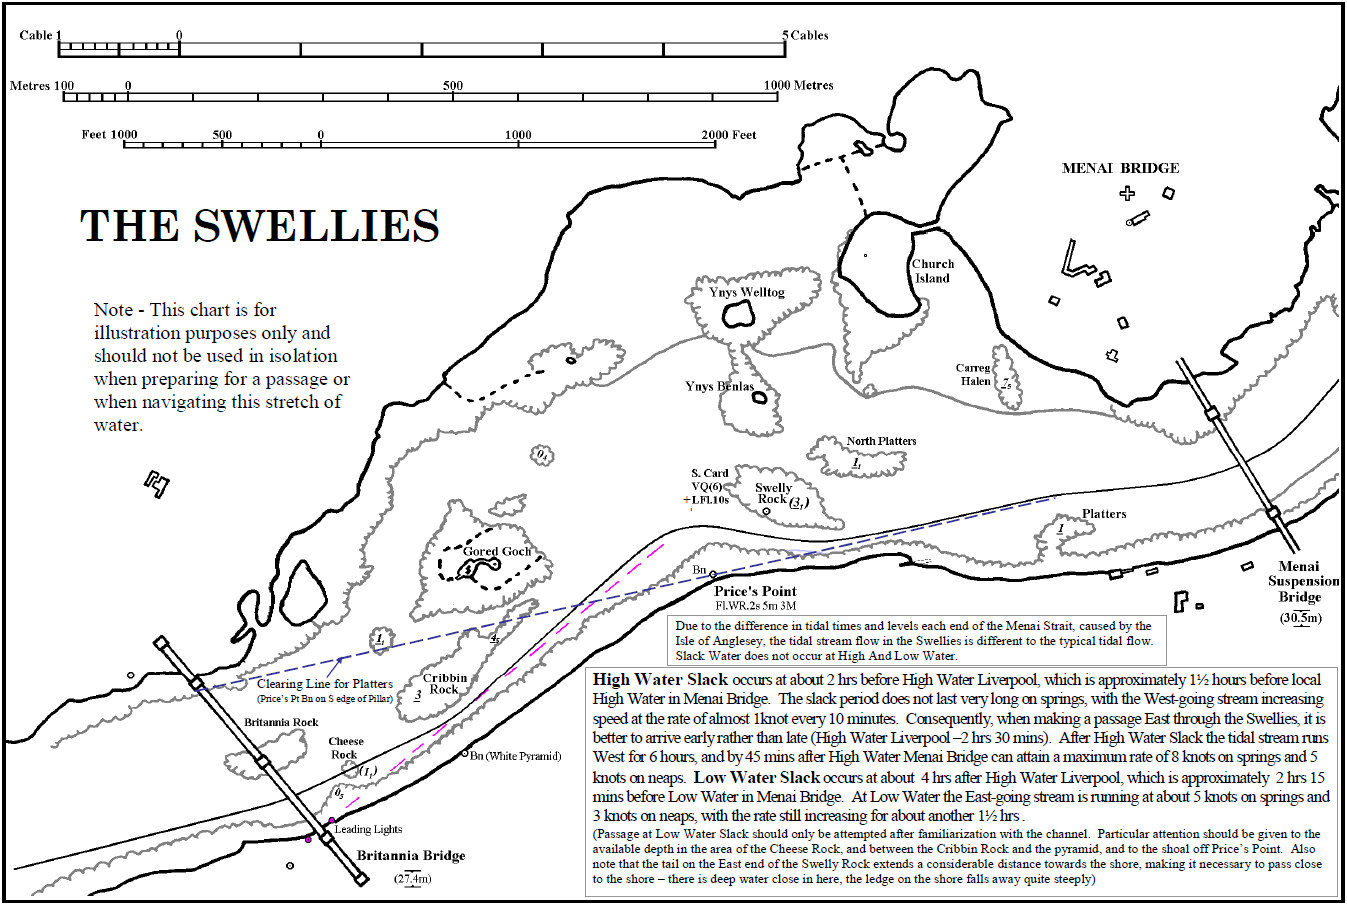 Navigation In The Swellies